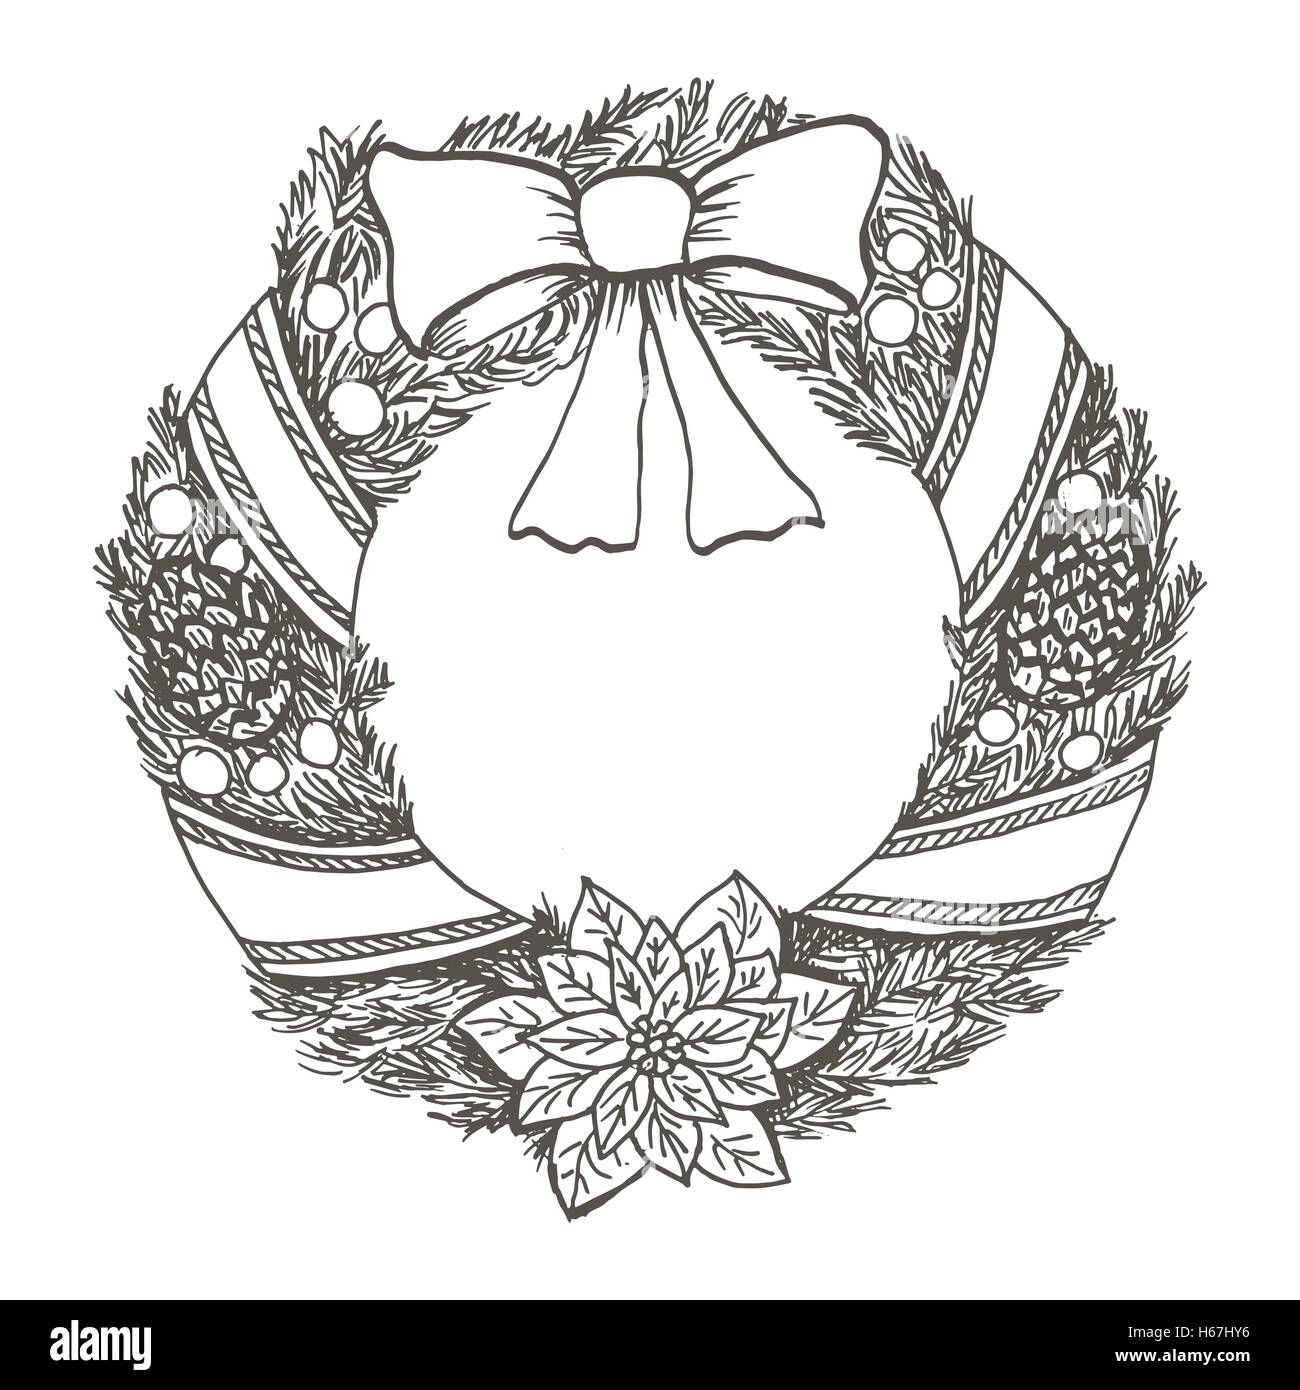 Christmas Wreath Drawing.Hand Drawn Doodle Christmas Wreath Black Pen Objects